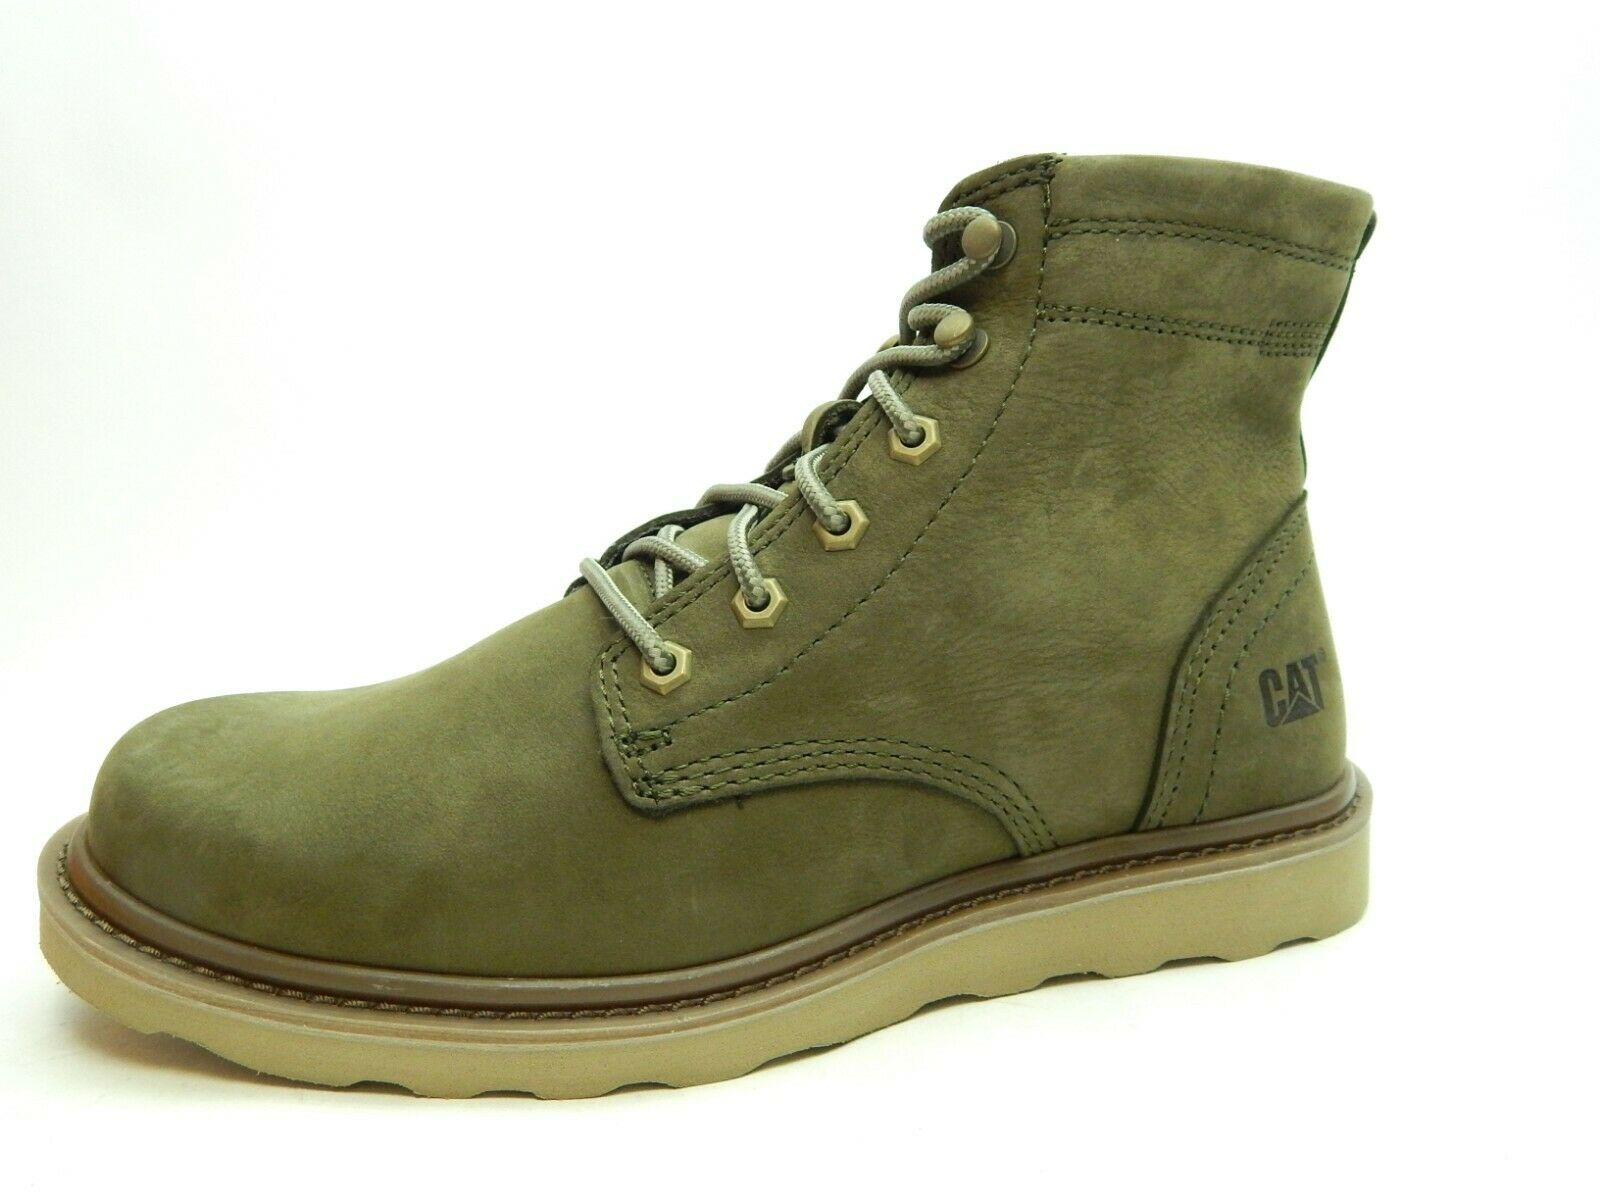 CATERPILLAR MEN CHRONICLE LACE UP BOOT DARK OLIVE P722101